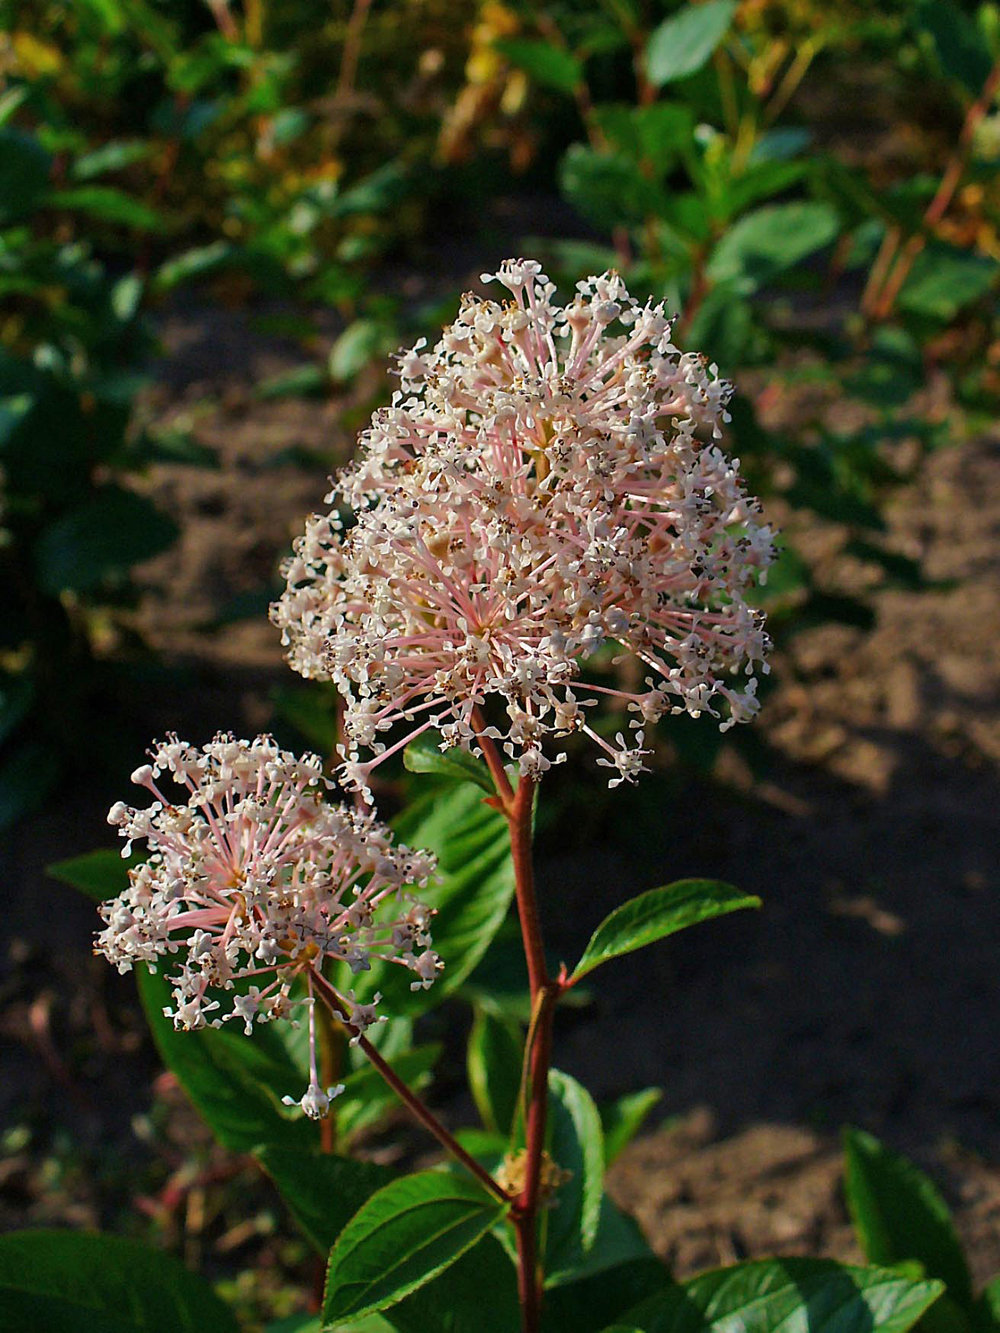 Ceanothus americanus   H. Zell [CC BY-SA 3.0 (https://creativecommons.org/licenses/by-sa/3.0)]